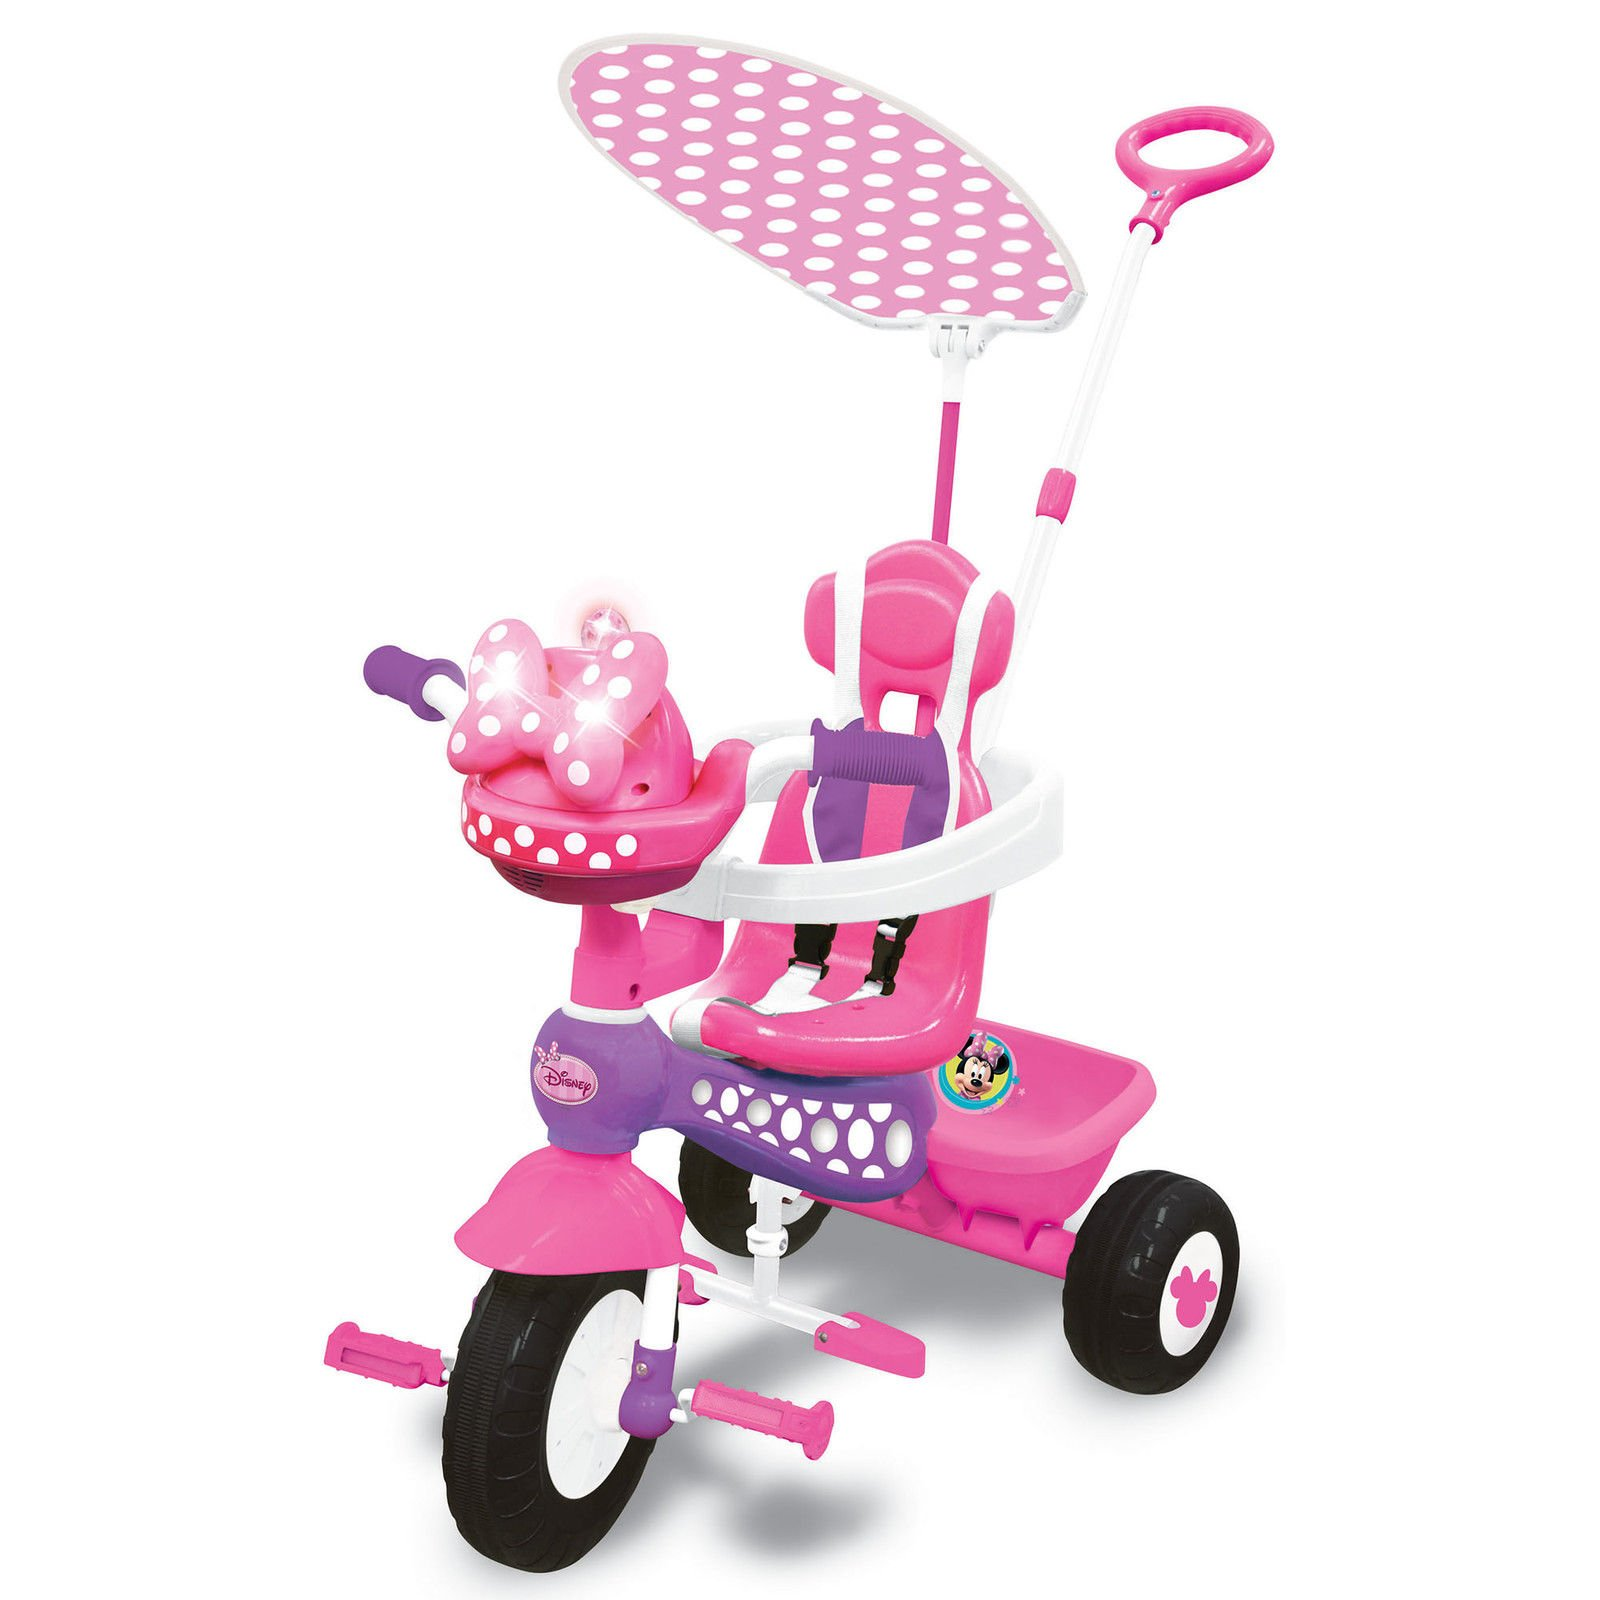 Kiddieland Minnie Mouse Push N' Ride 3-in-1 Trike + Sun Shade & Music